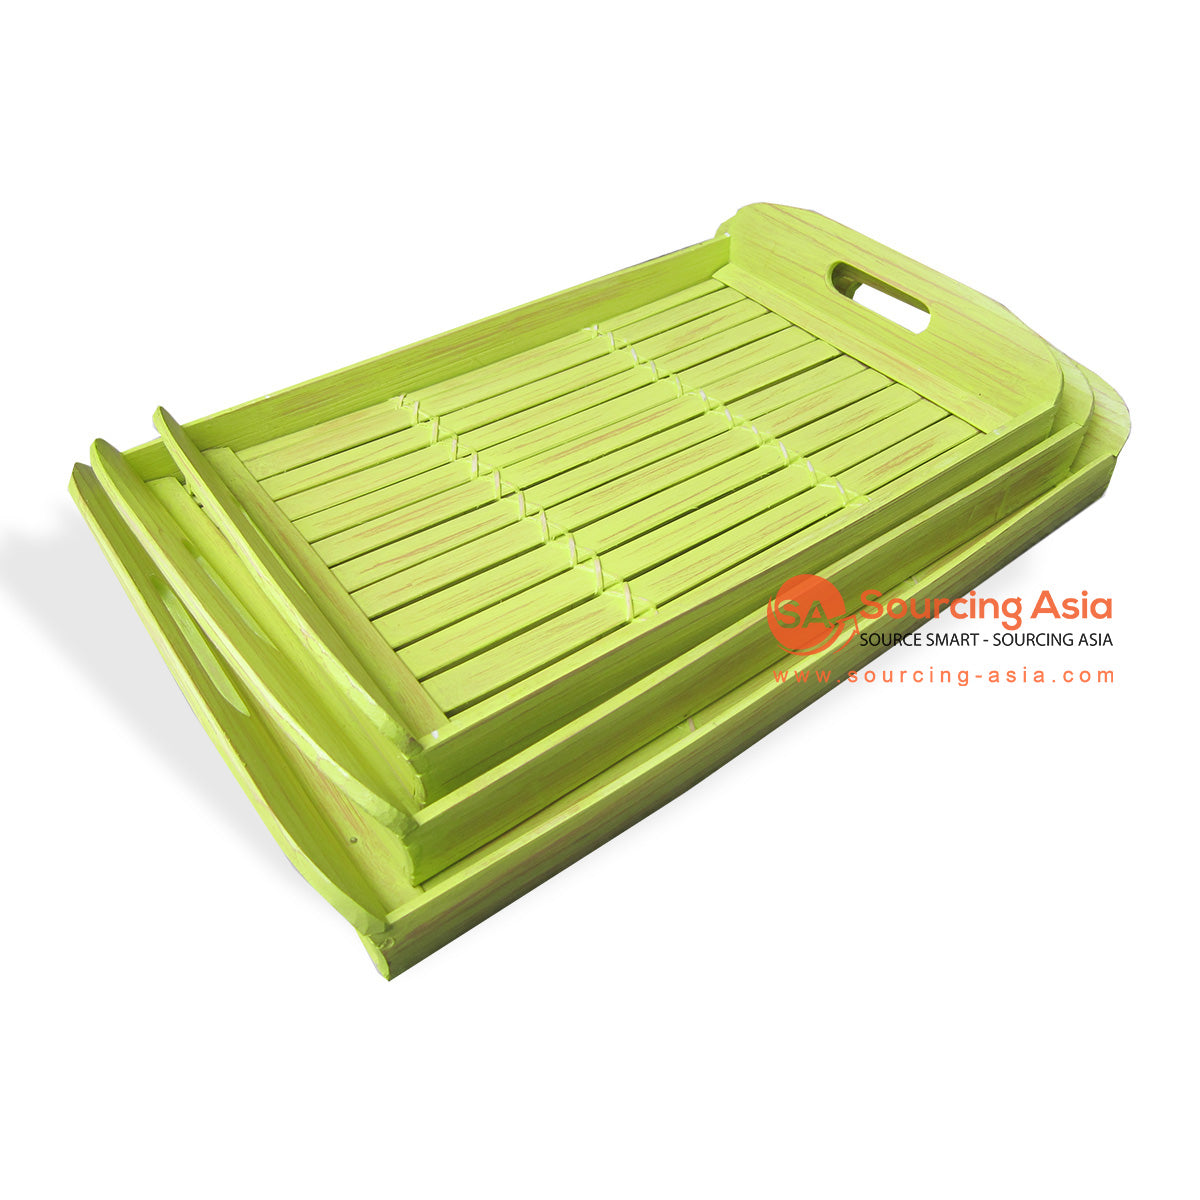 RATS023-3 SETS OF 3 BAMBOO TRAYS GREEN